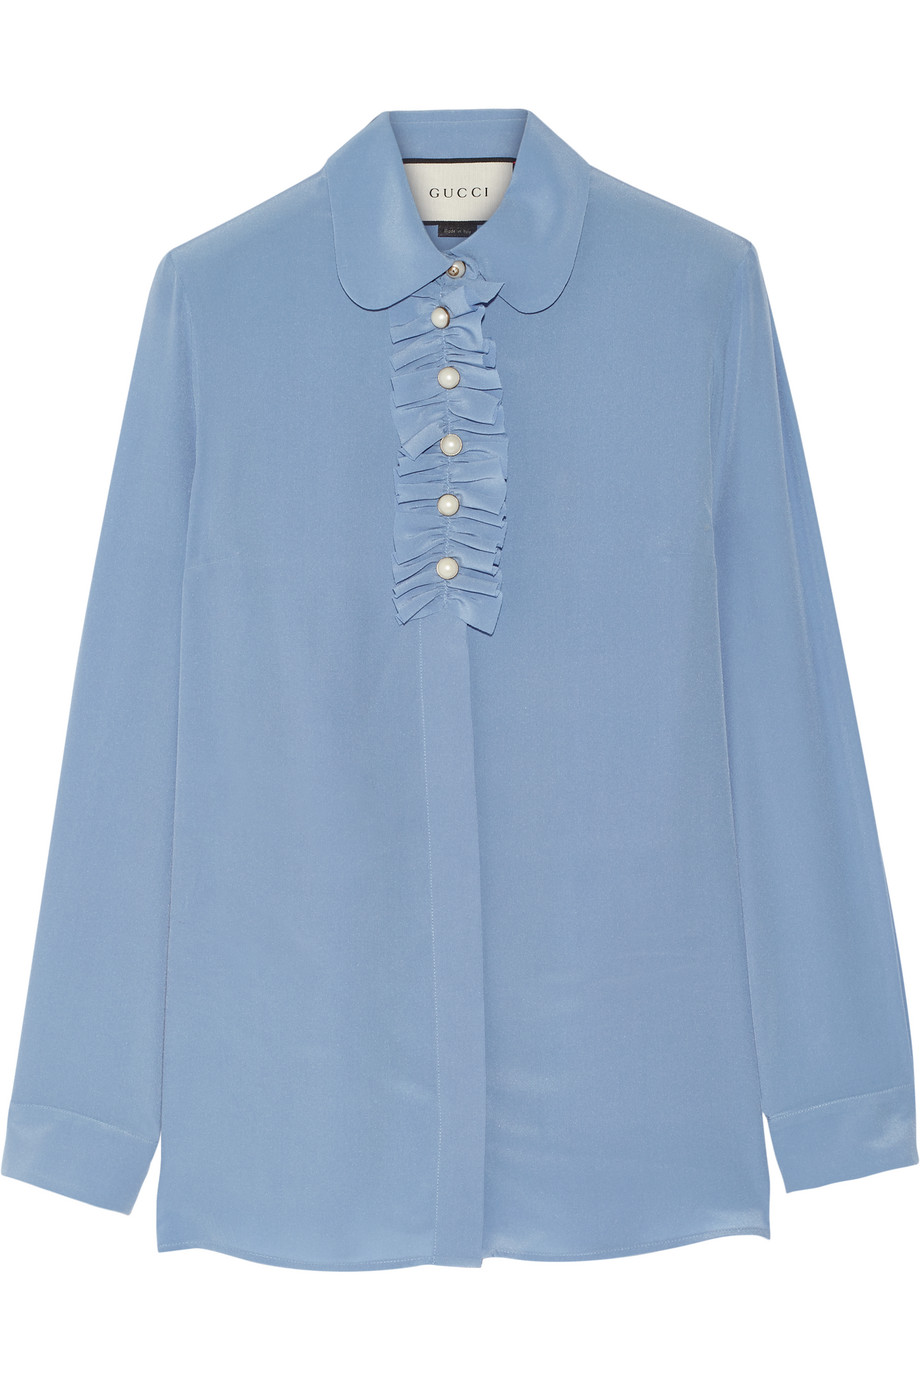 Gucci Faux Pearl-Embellished Ruffle-Trimed Silk Crepe De Chine Blouse, Sky Blue, Women's, Size: 38